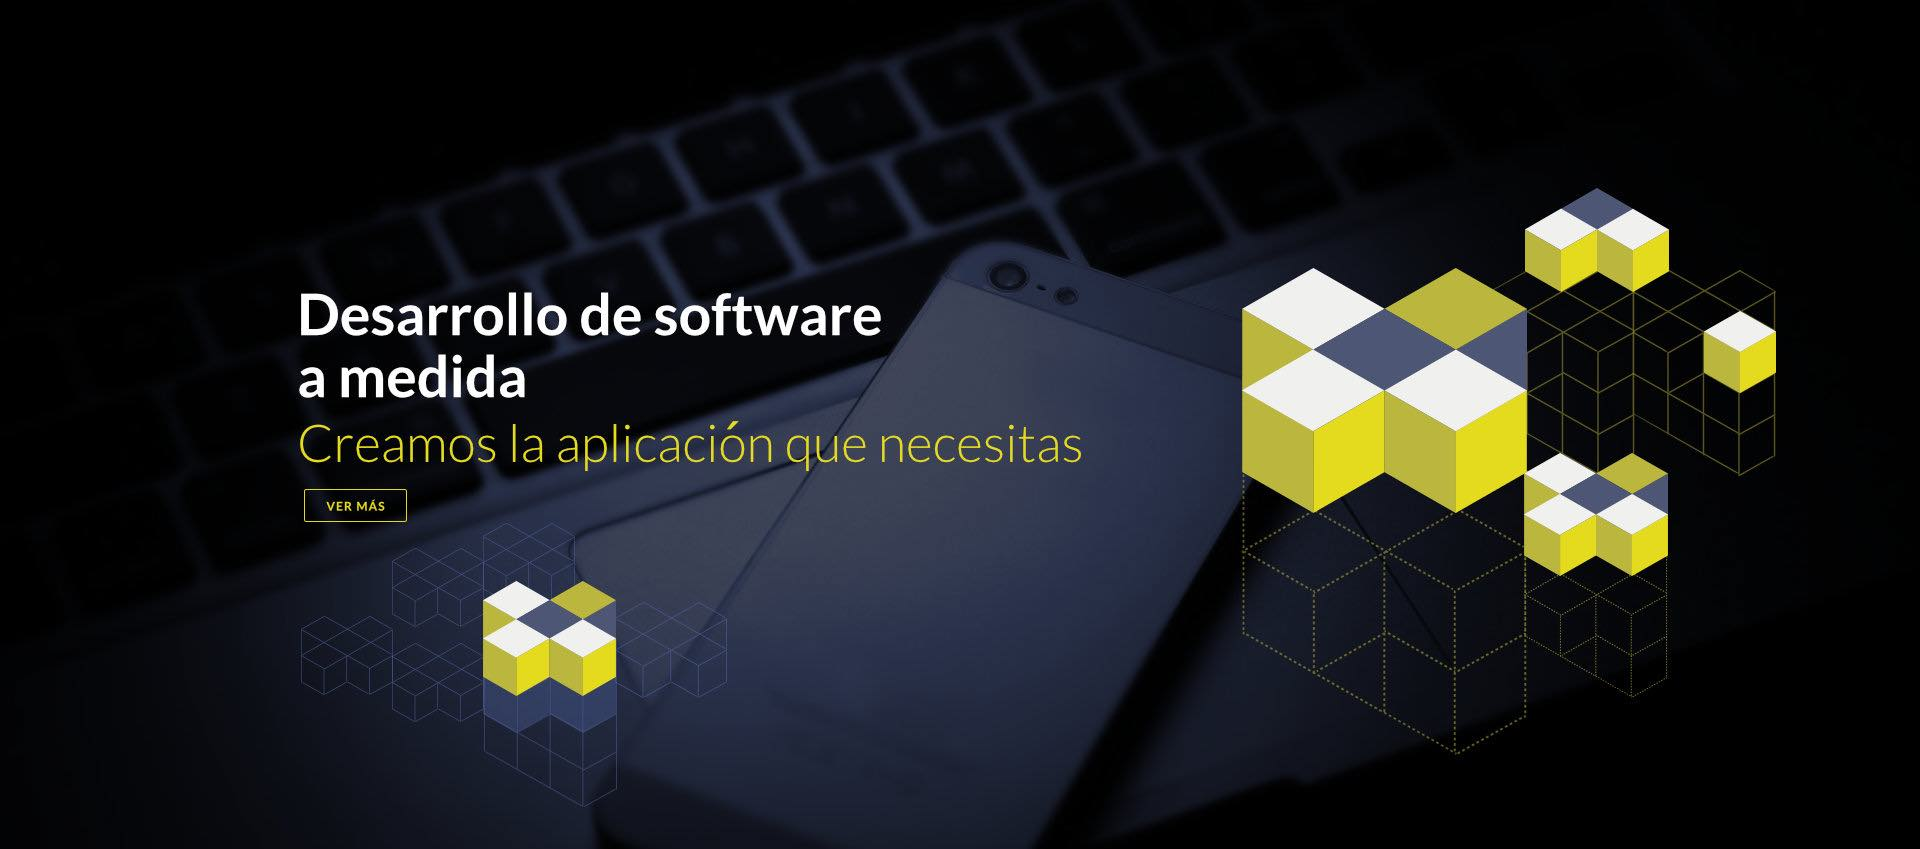 desarrollo-de-software-a-medida-home-medida.jpg